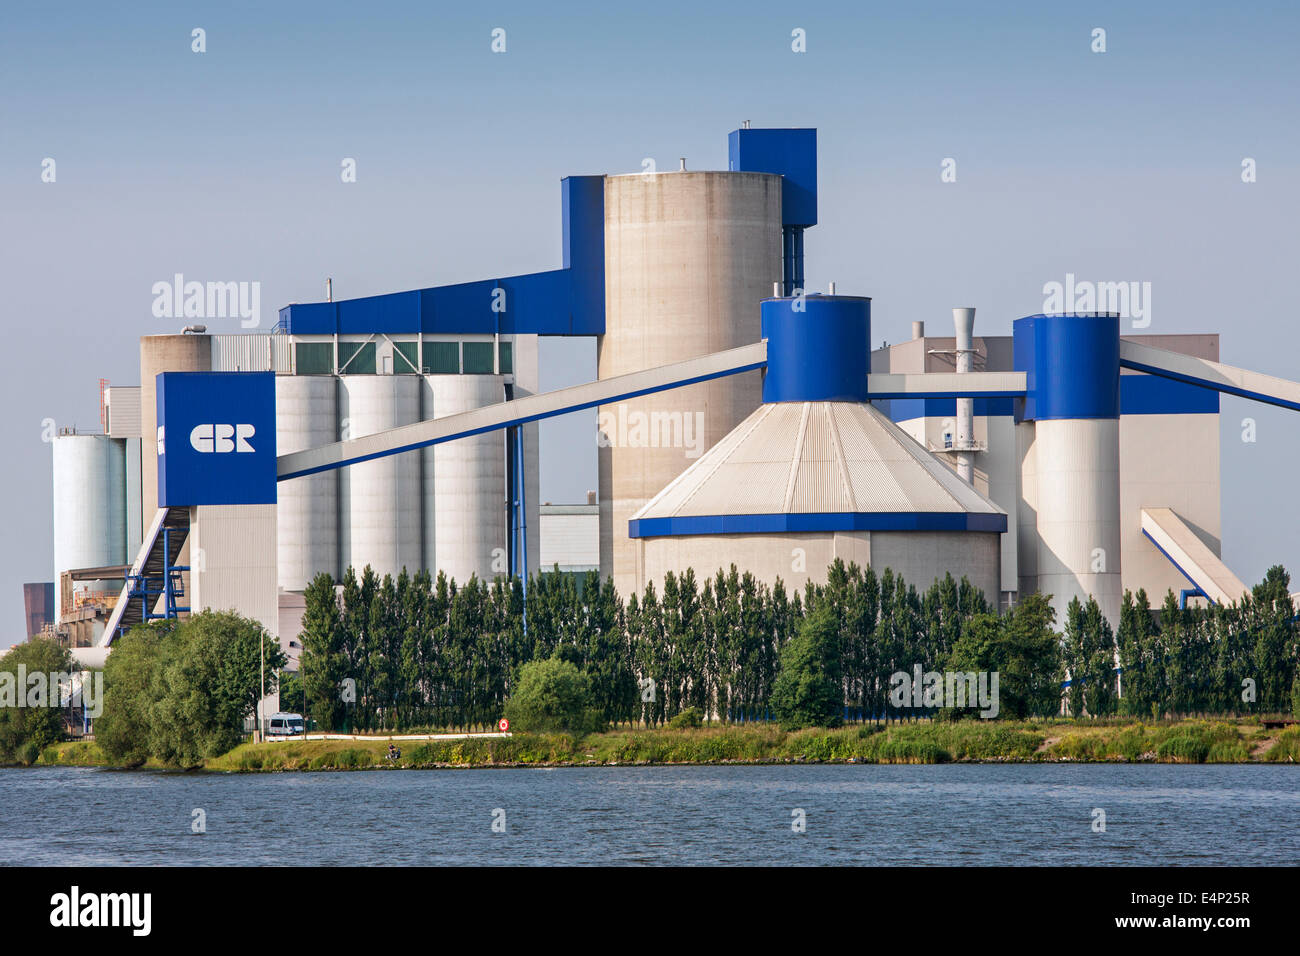 CBR, cement plant along the Ghent-Terneuzen Canal at Ghent seaport, East Flanders, Belgium - Stock Image